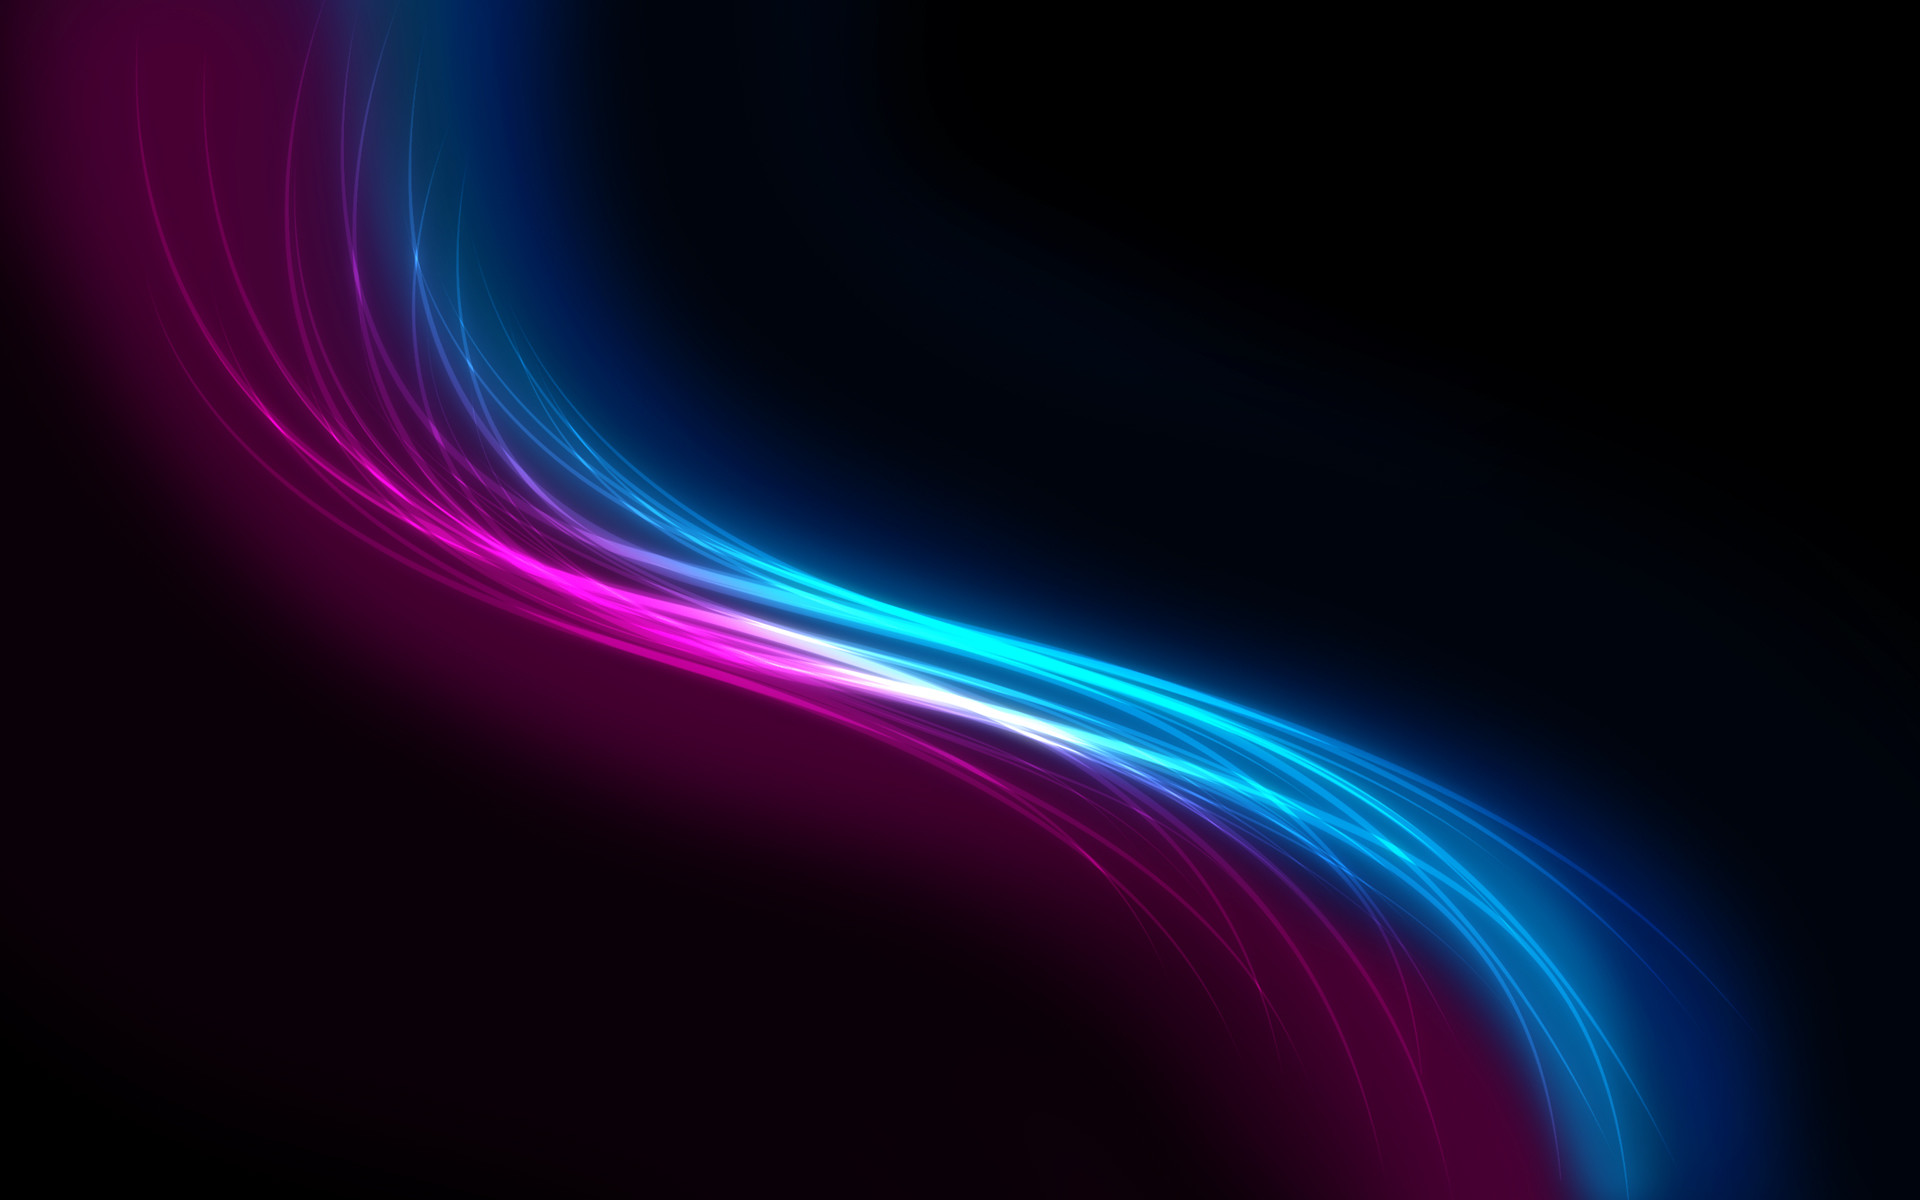 1920x1200 Background Blue Swirl Scenic Purple Backgrounds wallpapers HD free .